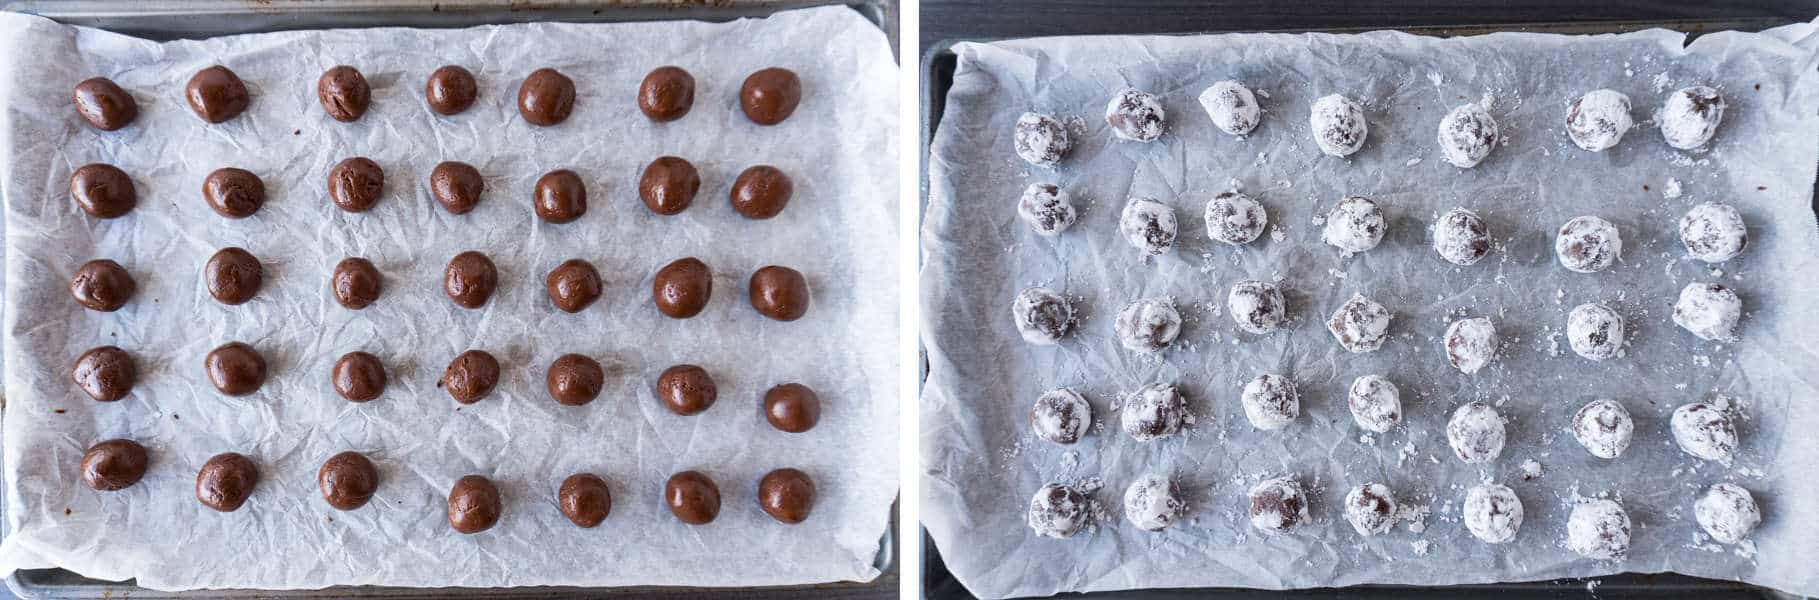 chocolate truffle recipe step1 and step 2